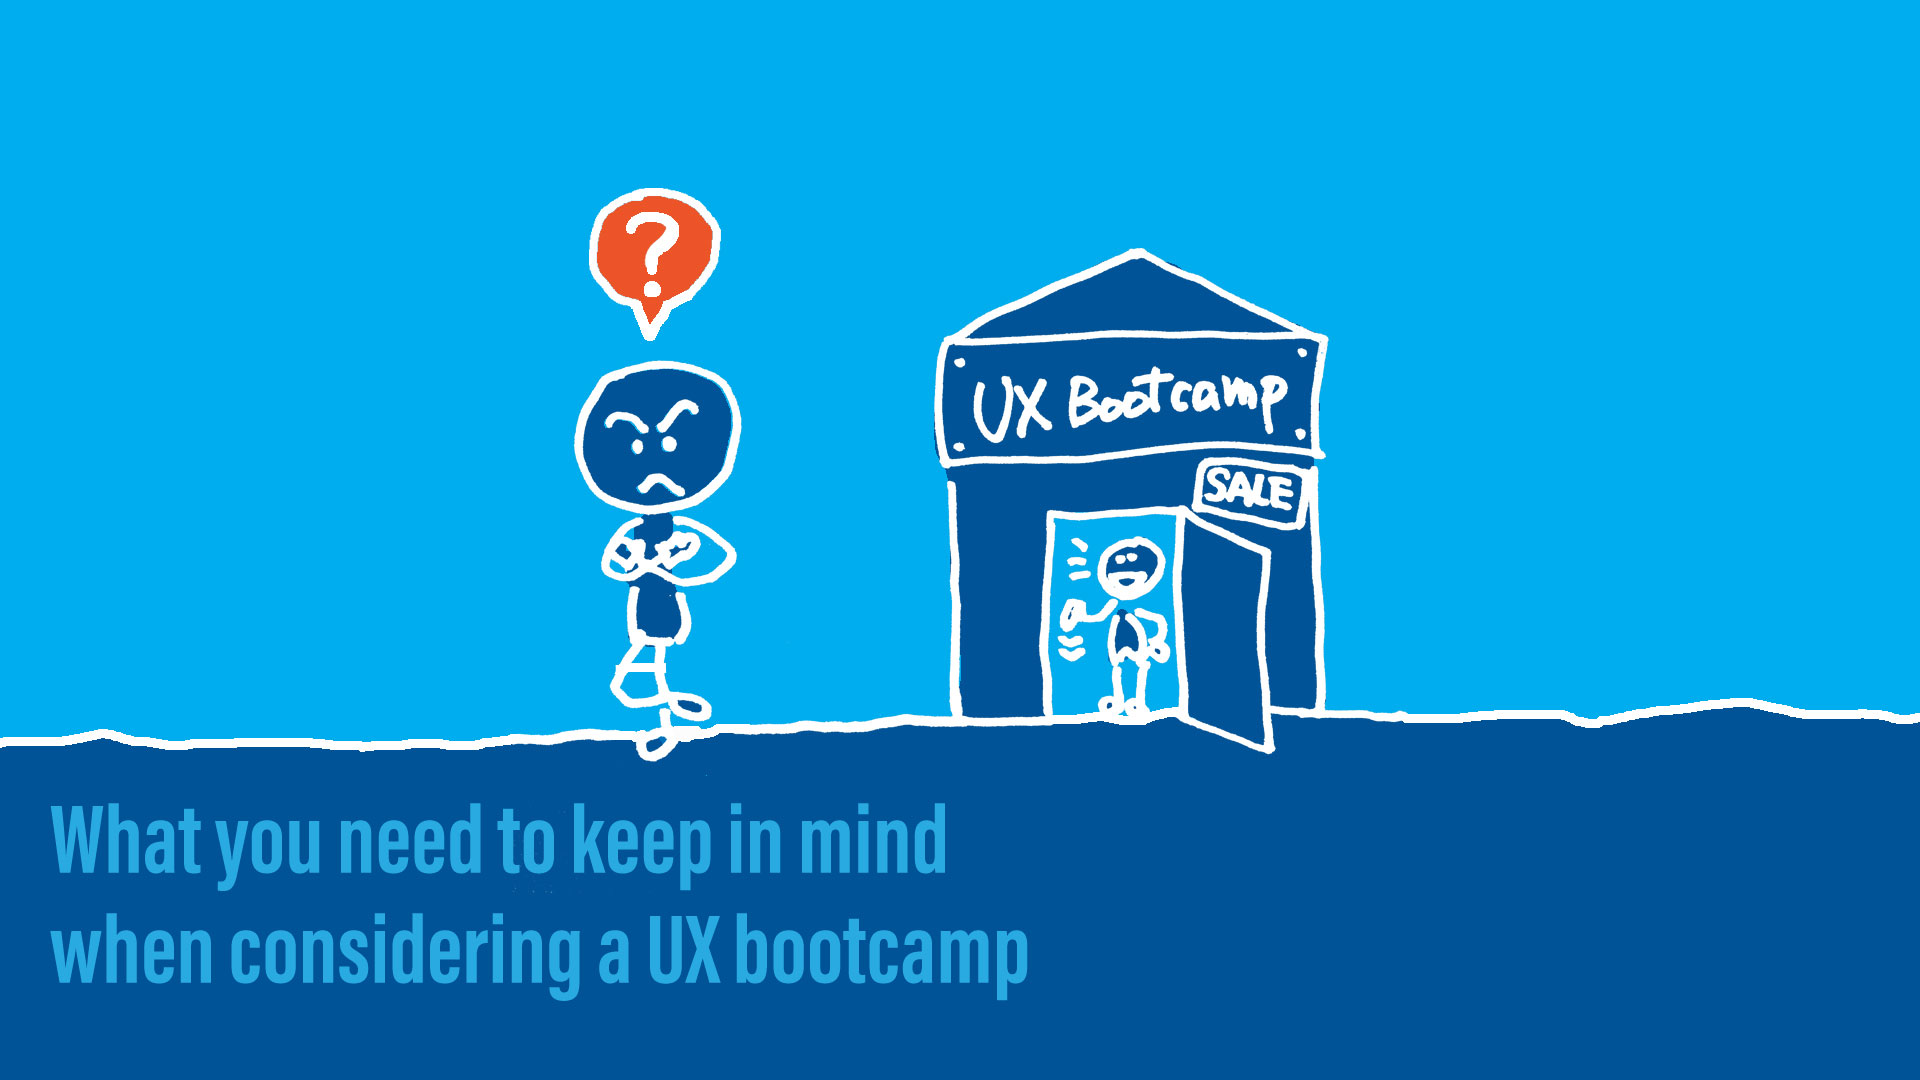 A person being skeptical about UX bootcamps with a title text.